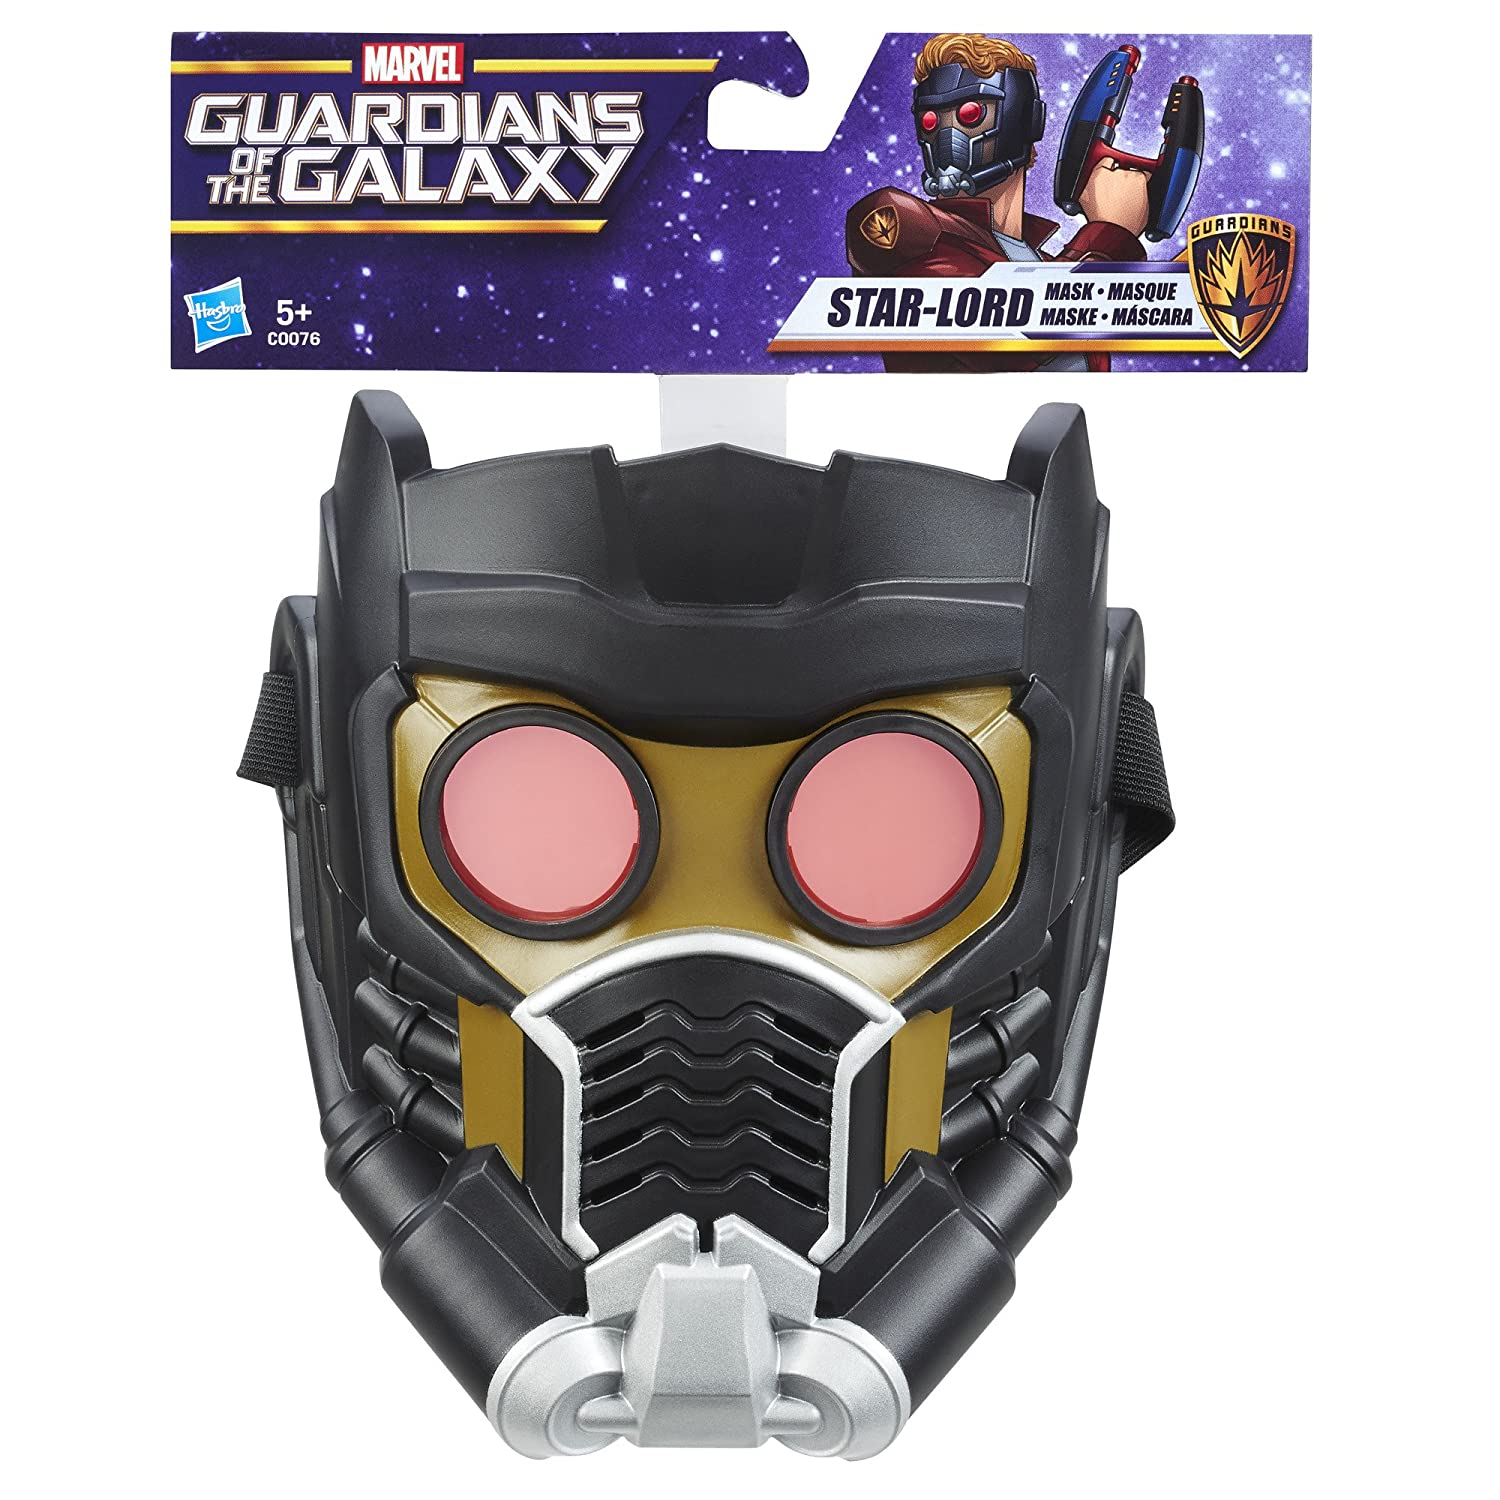 Mascara de star lord